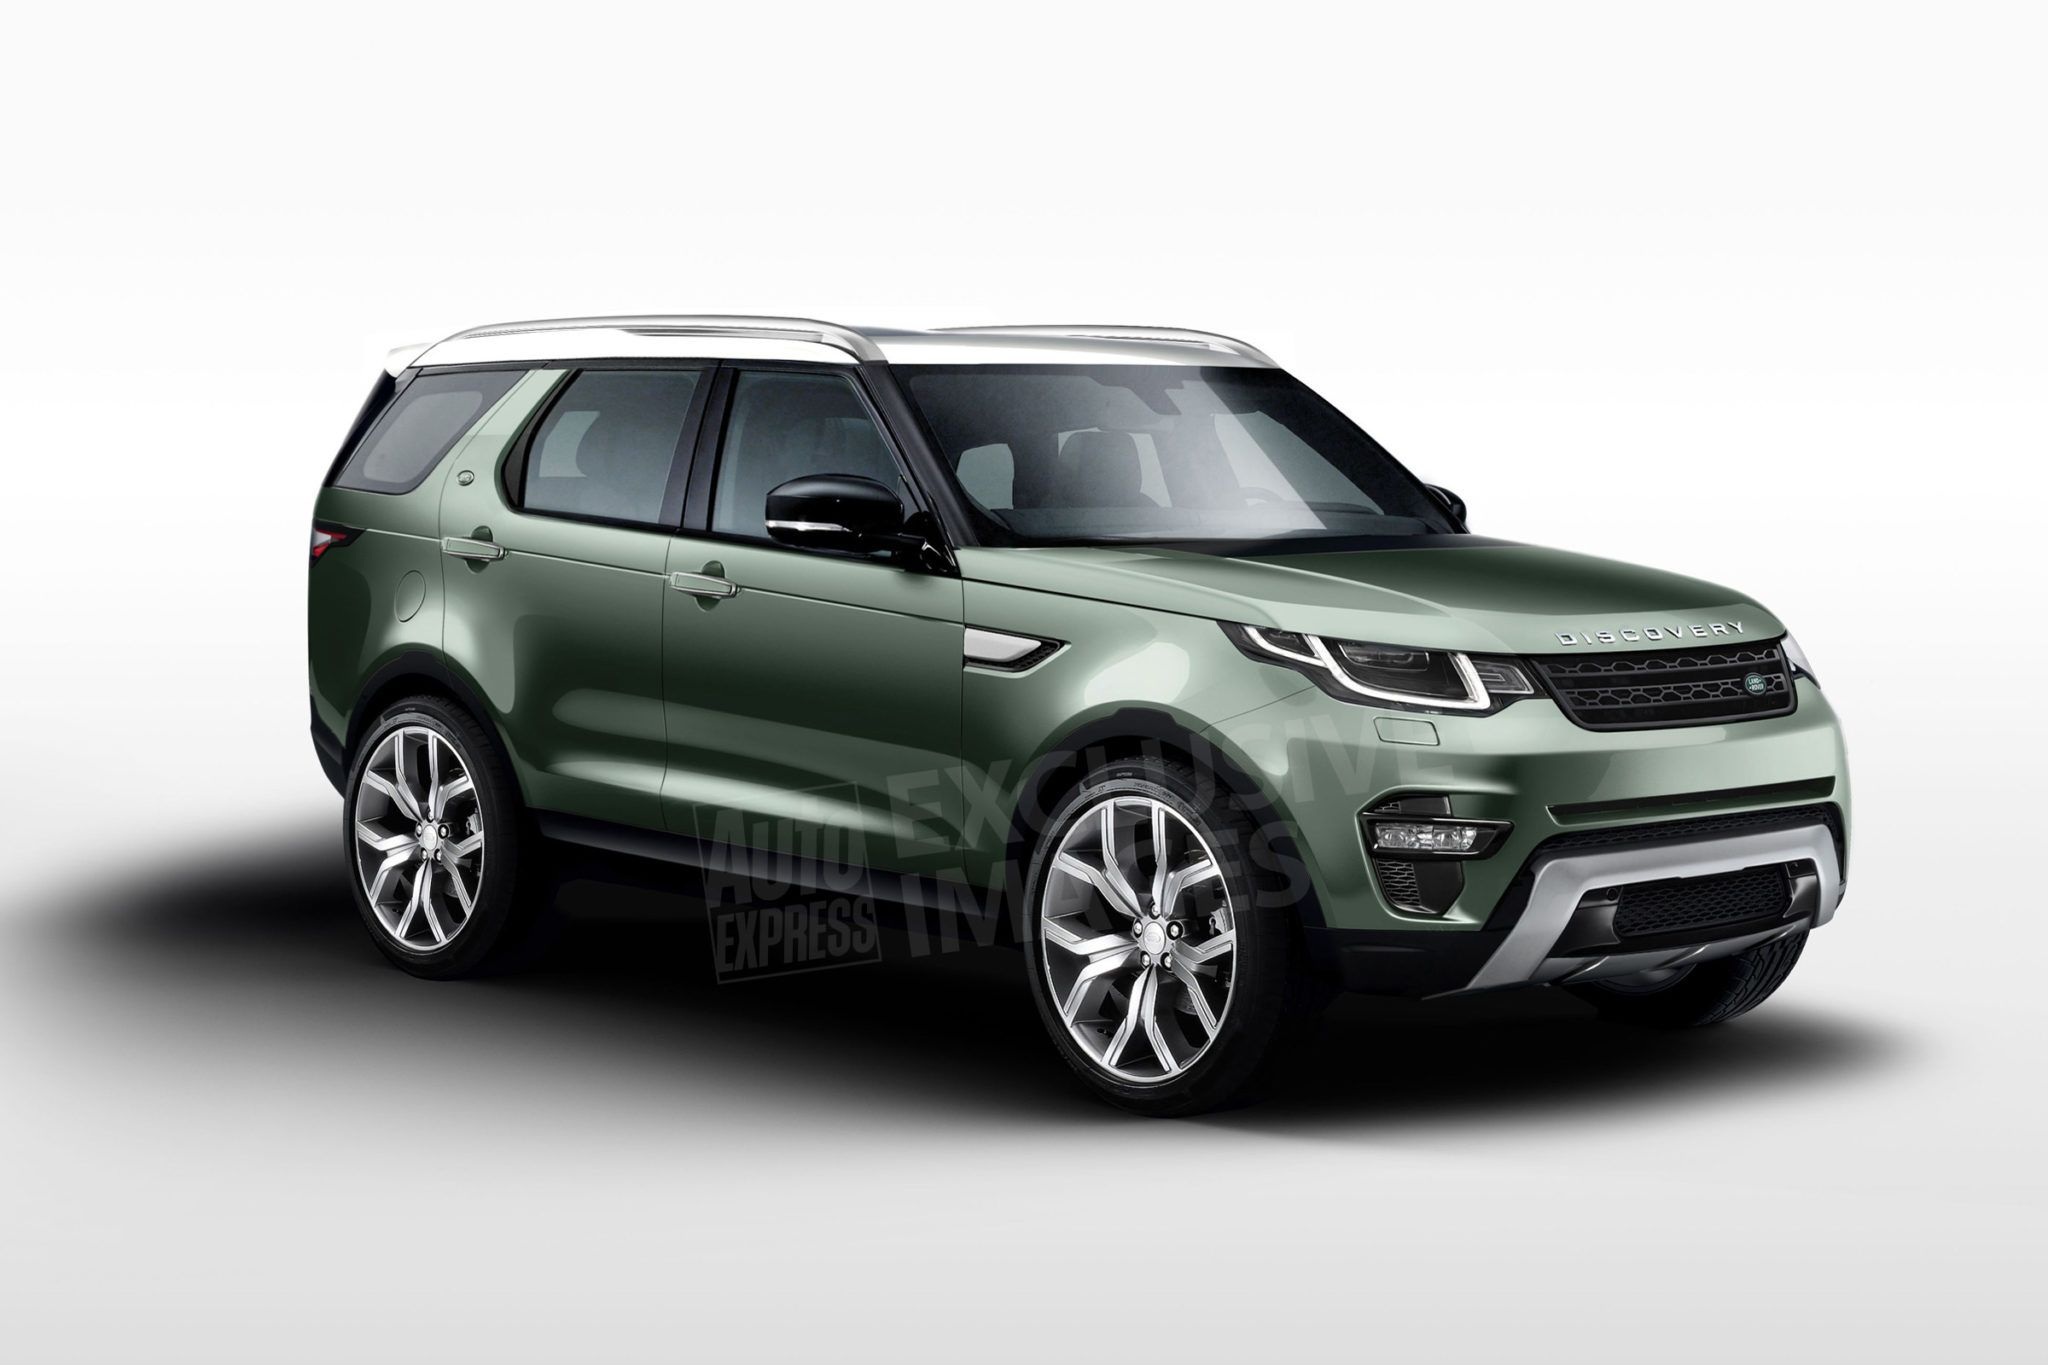 Carmodelreviews Com Jaguar Land Rover Is Stated To Be More Than Wanting To Land Rover Land Rover Discovery Land Rover Discovery 5